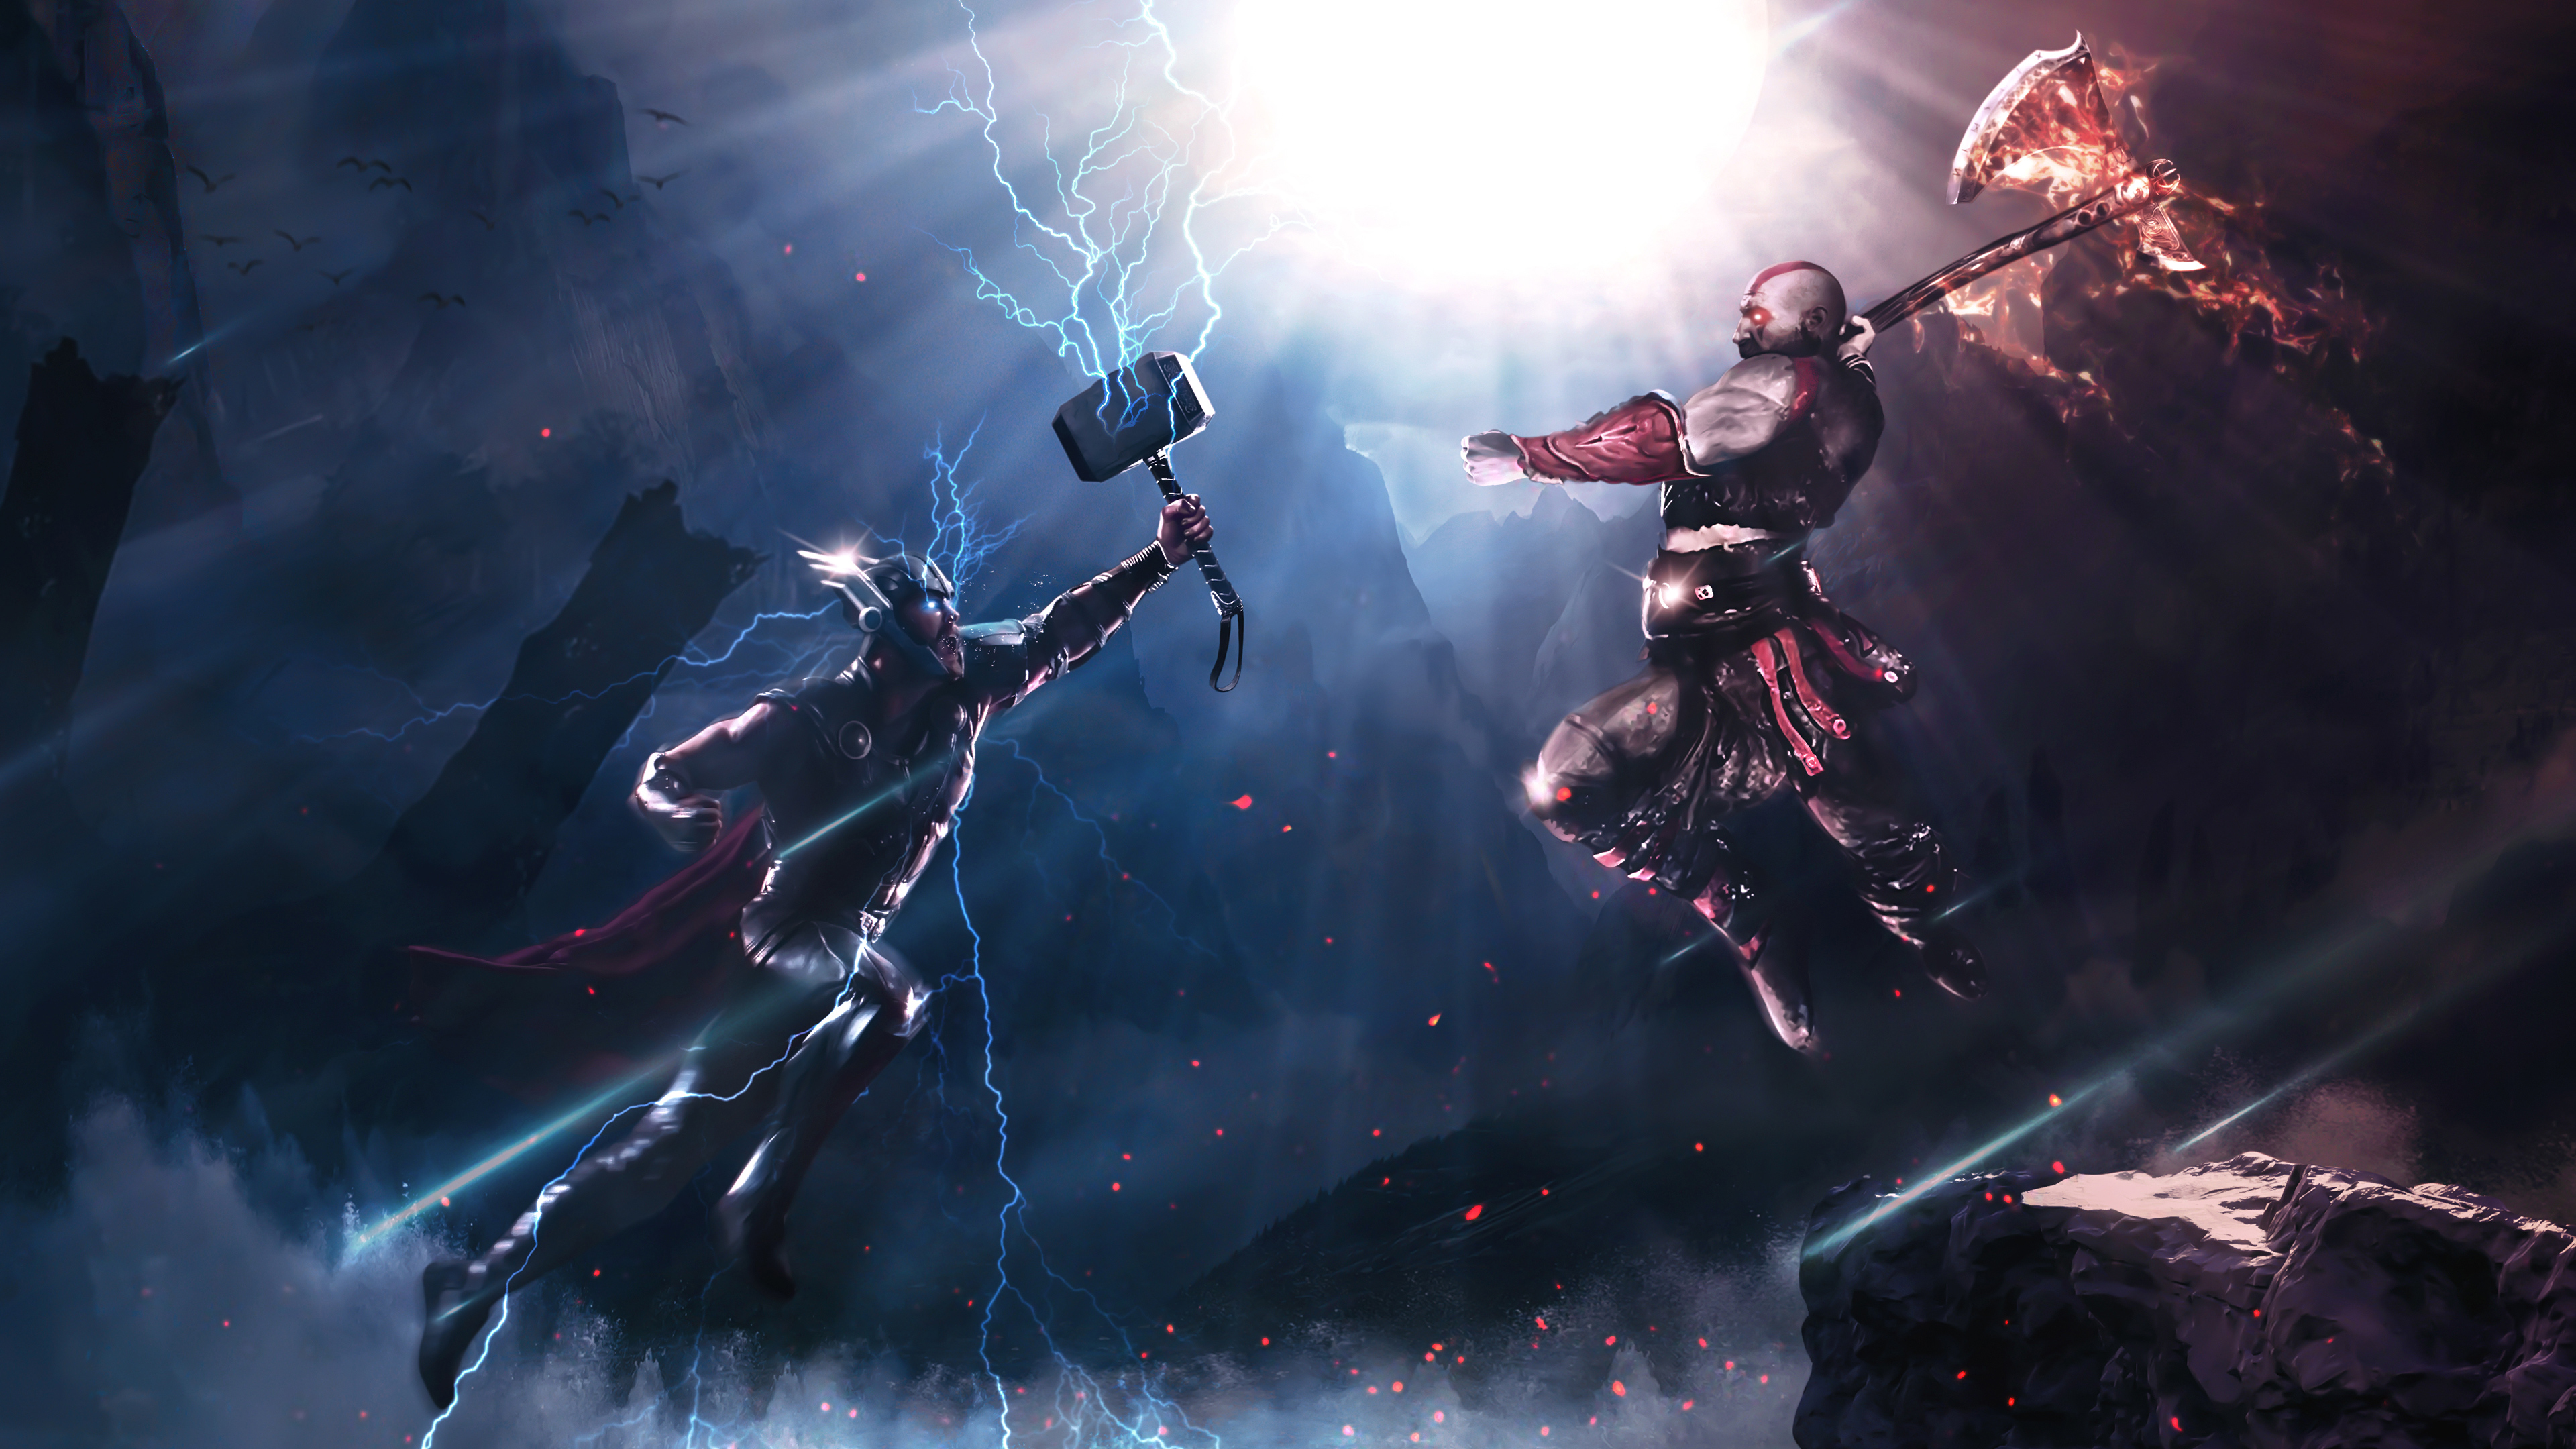 thor vs kratos art 4k 1547936624 - Thor Vs Kratos Art 4k - thor wallpapers, superheroes wallpapers, kratos wallpapers, hd-wallpapers, digital art wallpapers, behance wallpapers, artwork wallpapers, 4k-wallpapers